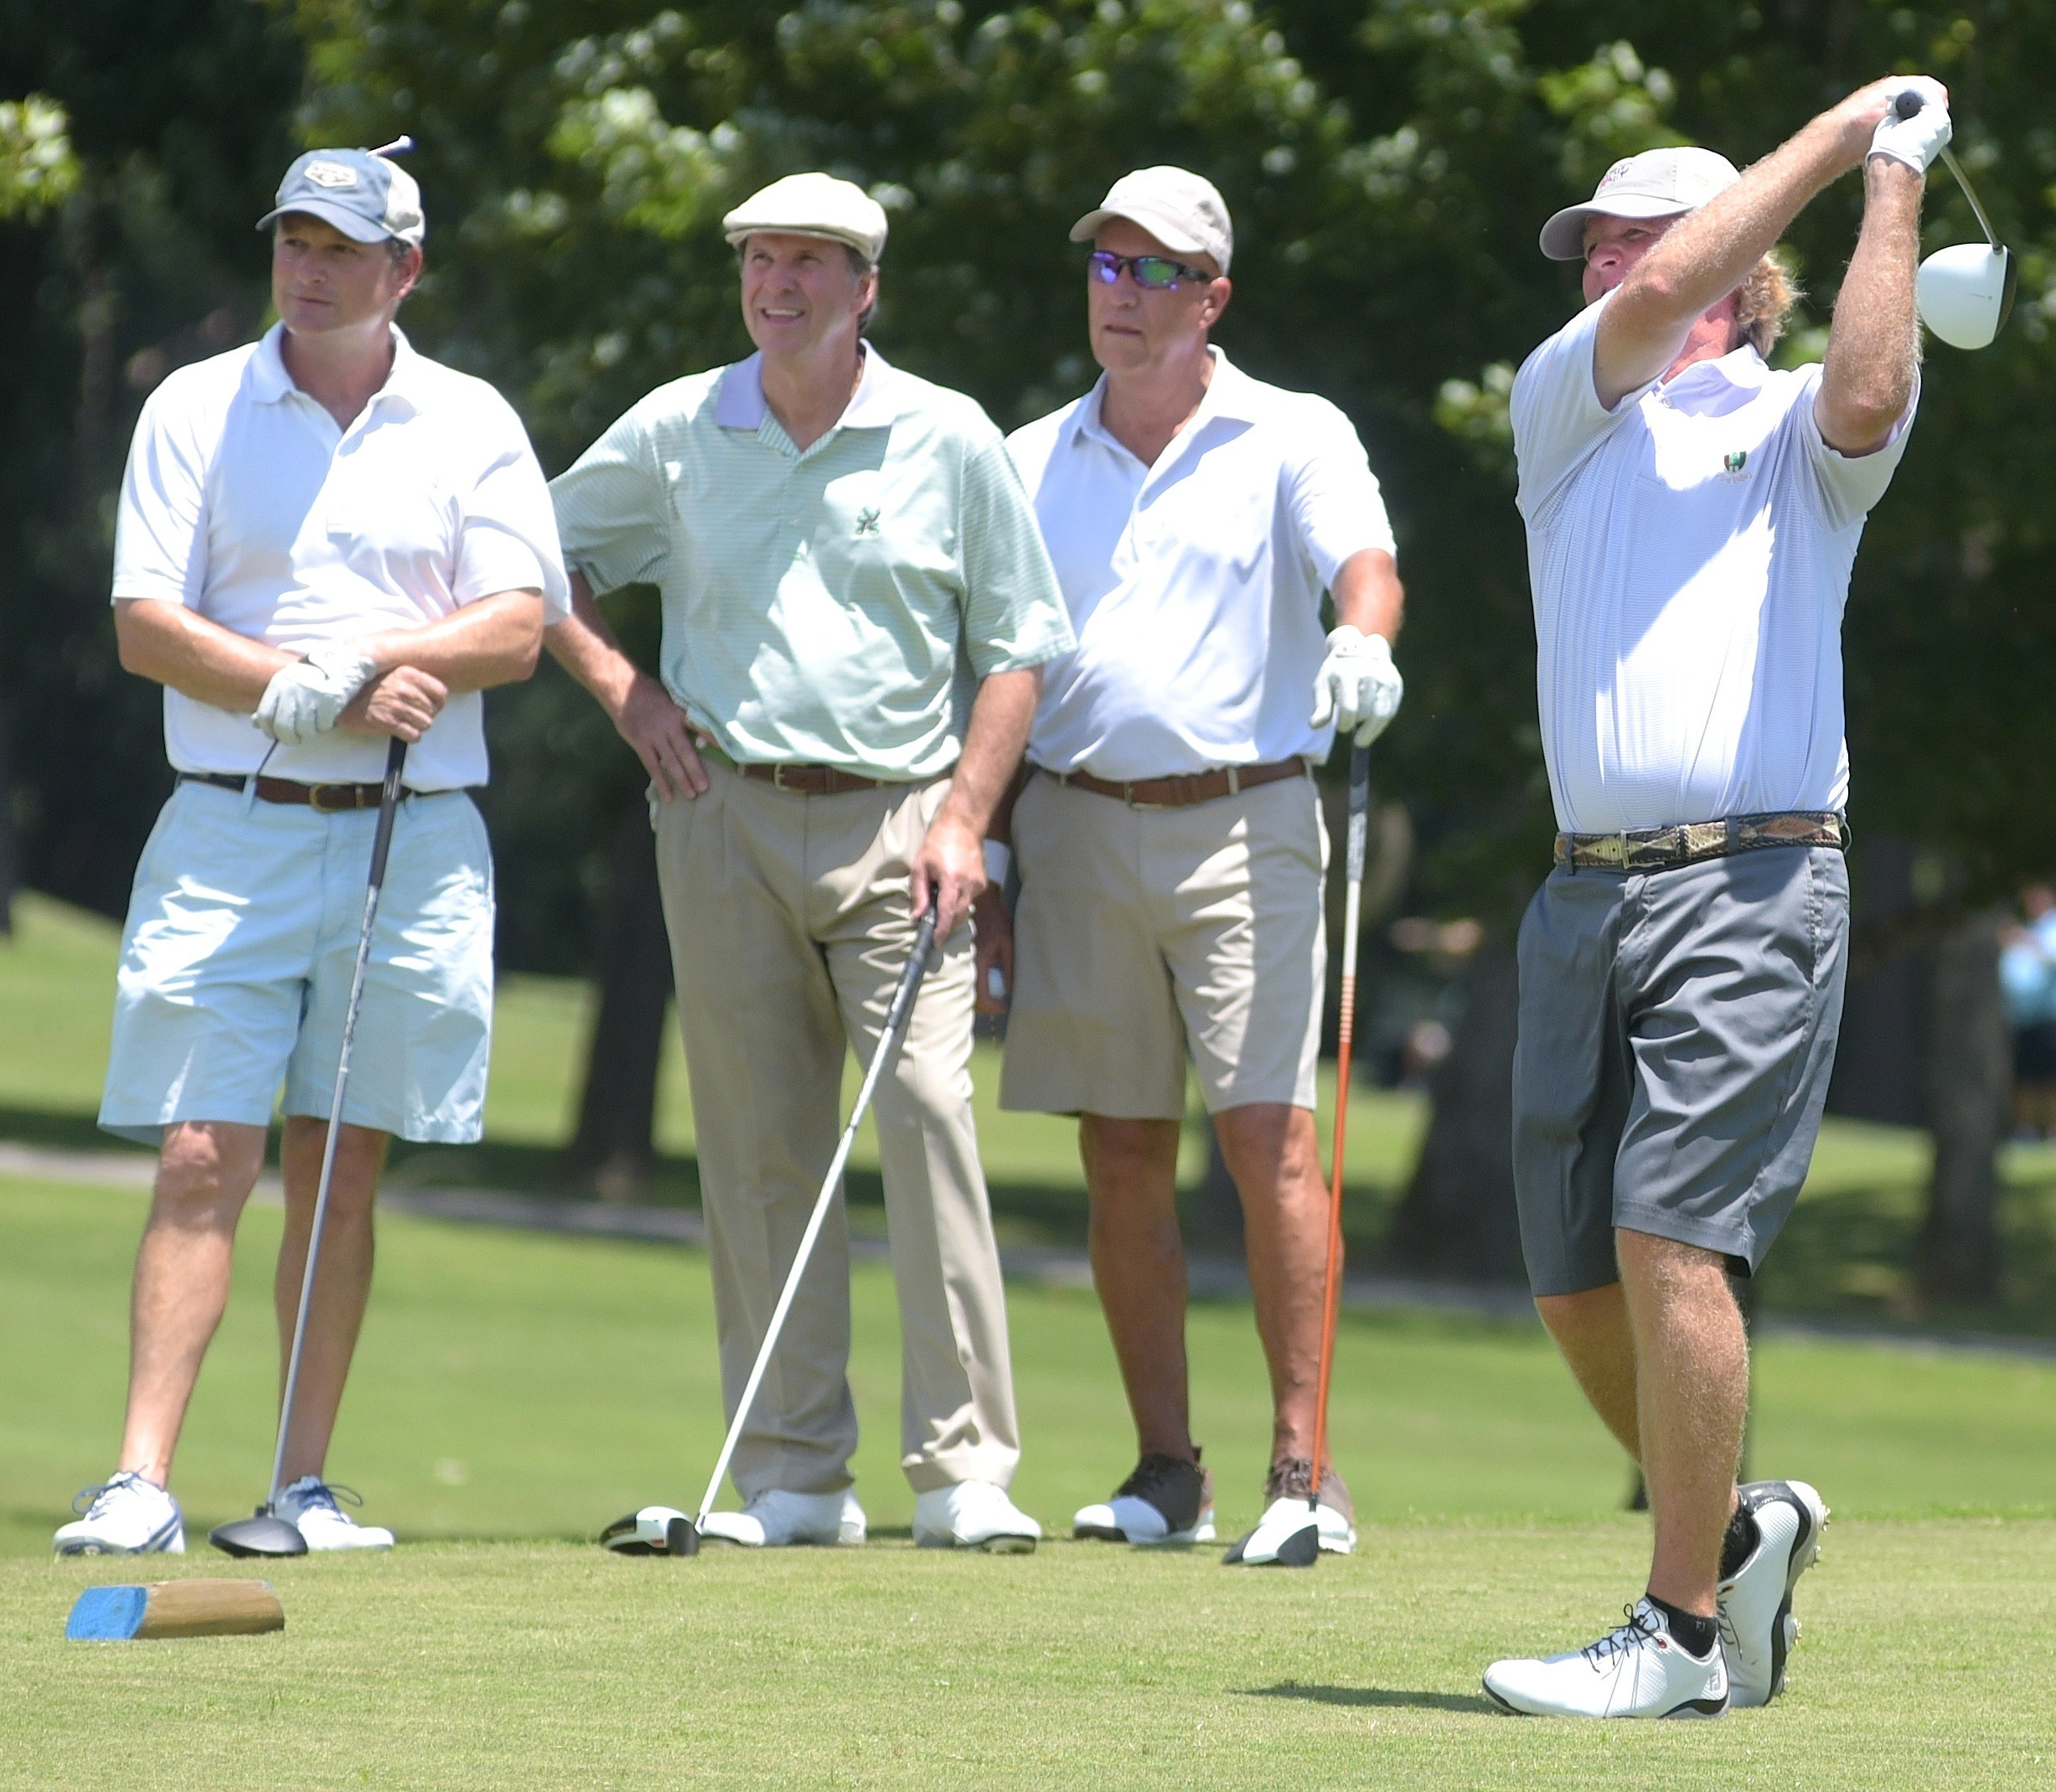 Alan Pope, right, hits a drive on the 16th hole during the opening round of the Travis Hudson/Bernard Weinstein Invitational as, from left, Patrick Drummond, Steve Hudson and Murray Hixson look on. The trio of Cody O'Toole, Eli Marty and Ben Follett are tied for the lead after the first round. The three-day tournament ends on Sunday.